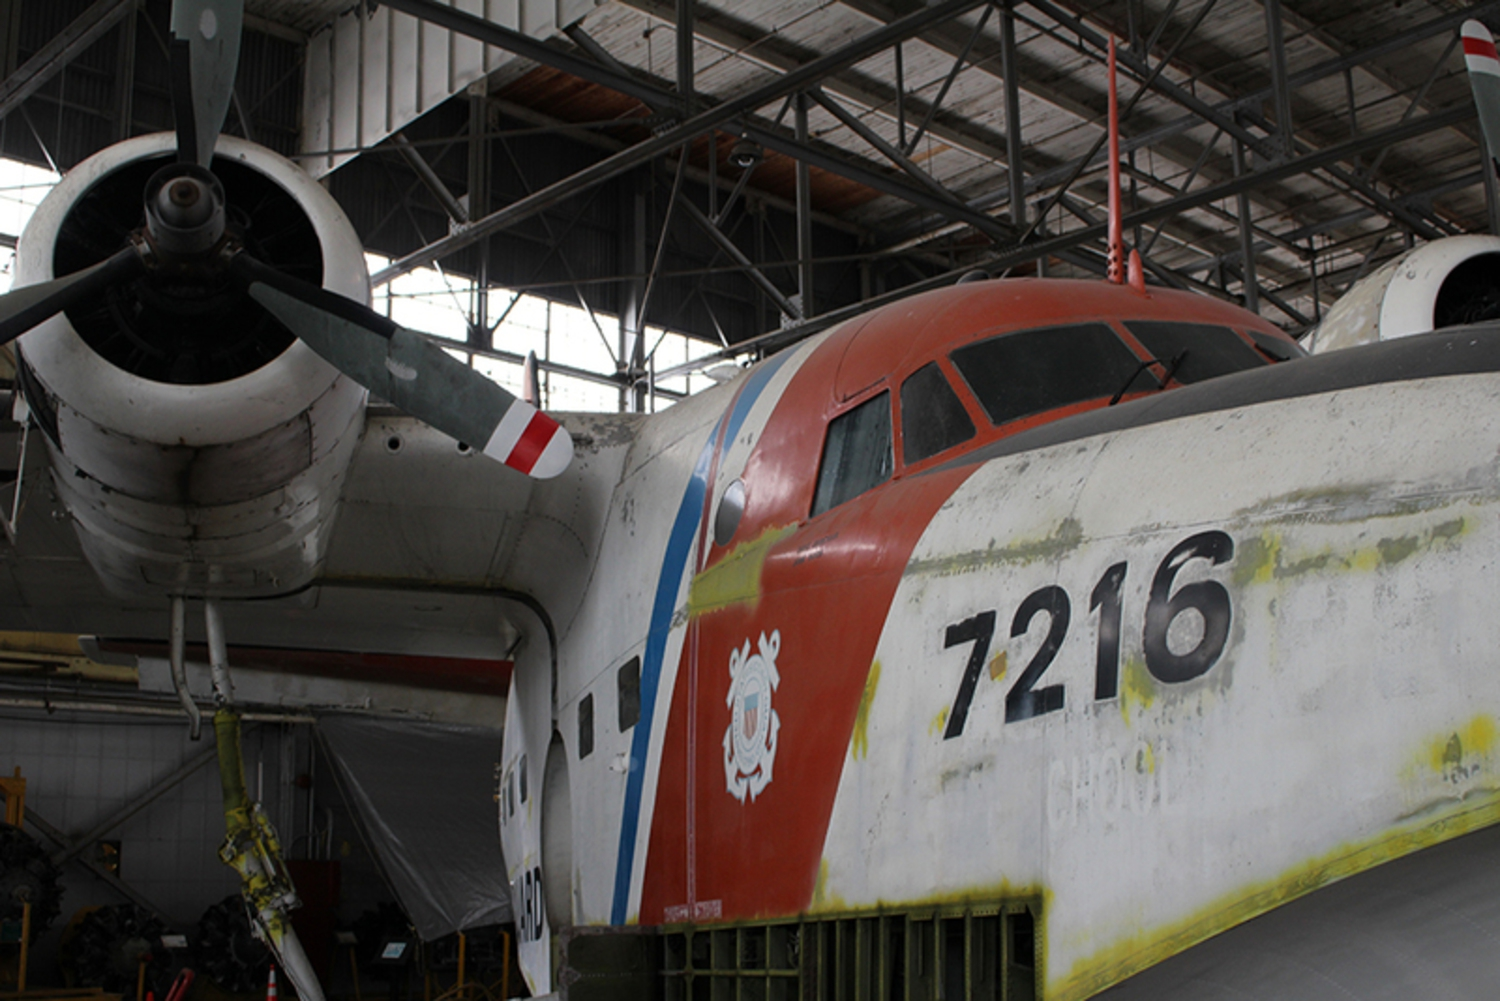 One of Brooklyn's best kept secrets, Hangar B, filled with vintage aircraft being restored.